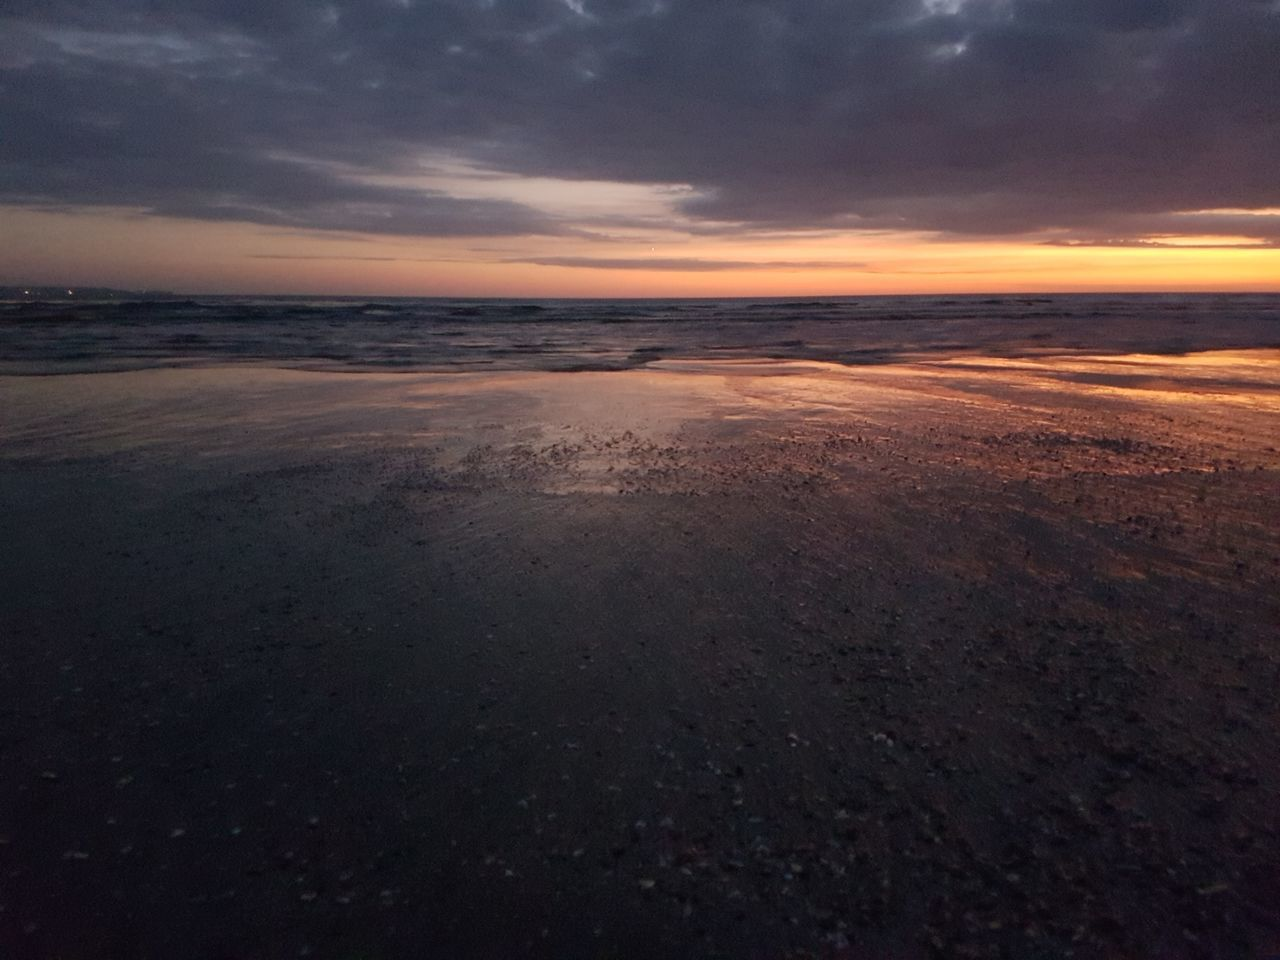 sunset, nature, sea, scenics, beauty in nature, tranquility, tranquil scene, sky, water, beach, outdoors, cloud - sky, no people, horizon over water, day